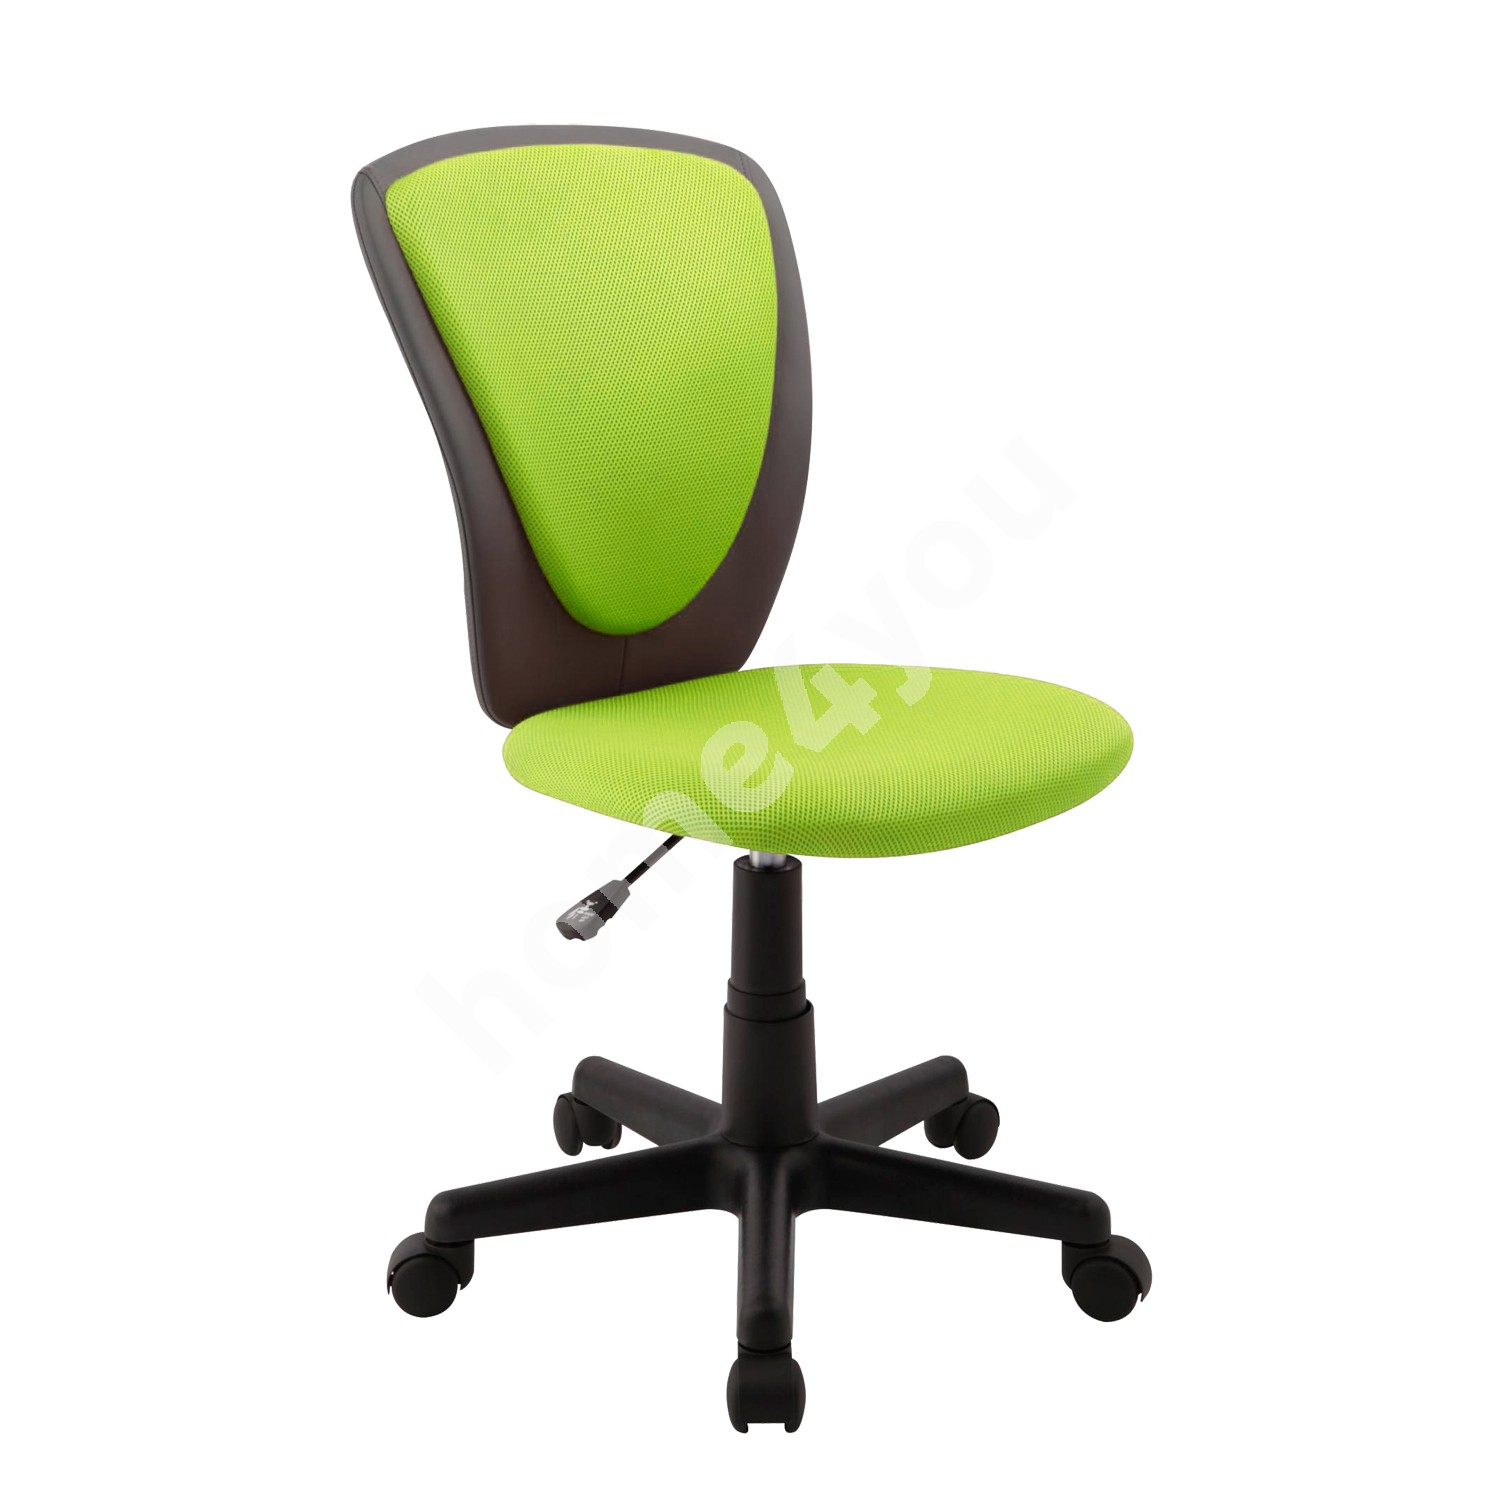 Task chair BIANCA 42x51xH82-94cm, seat and back rest: mesh fabric / imitation leather, color: green - dark grey